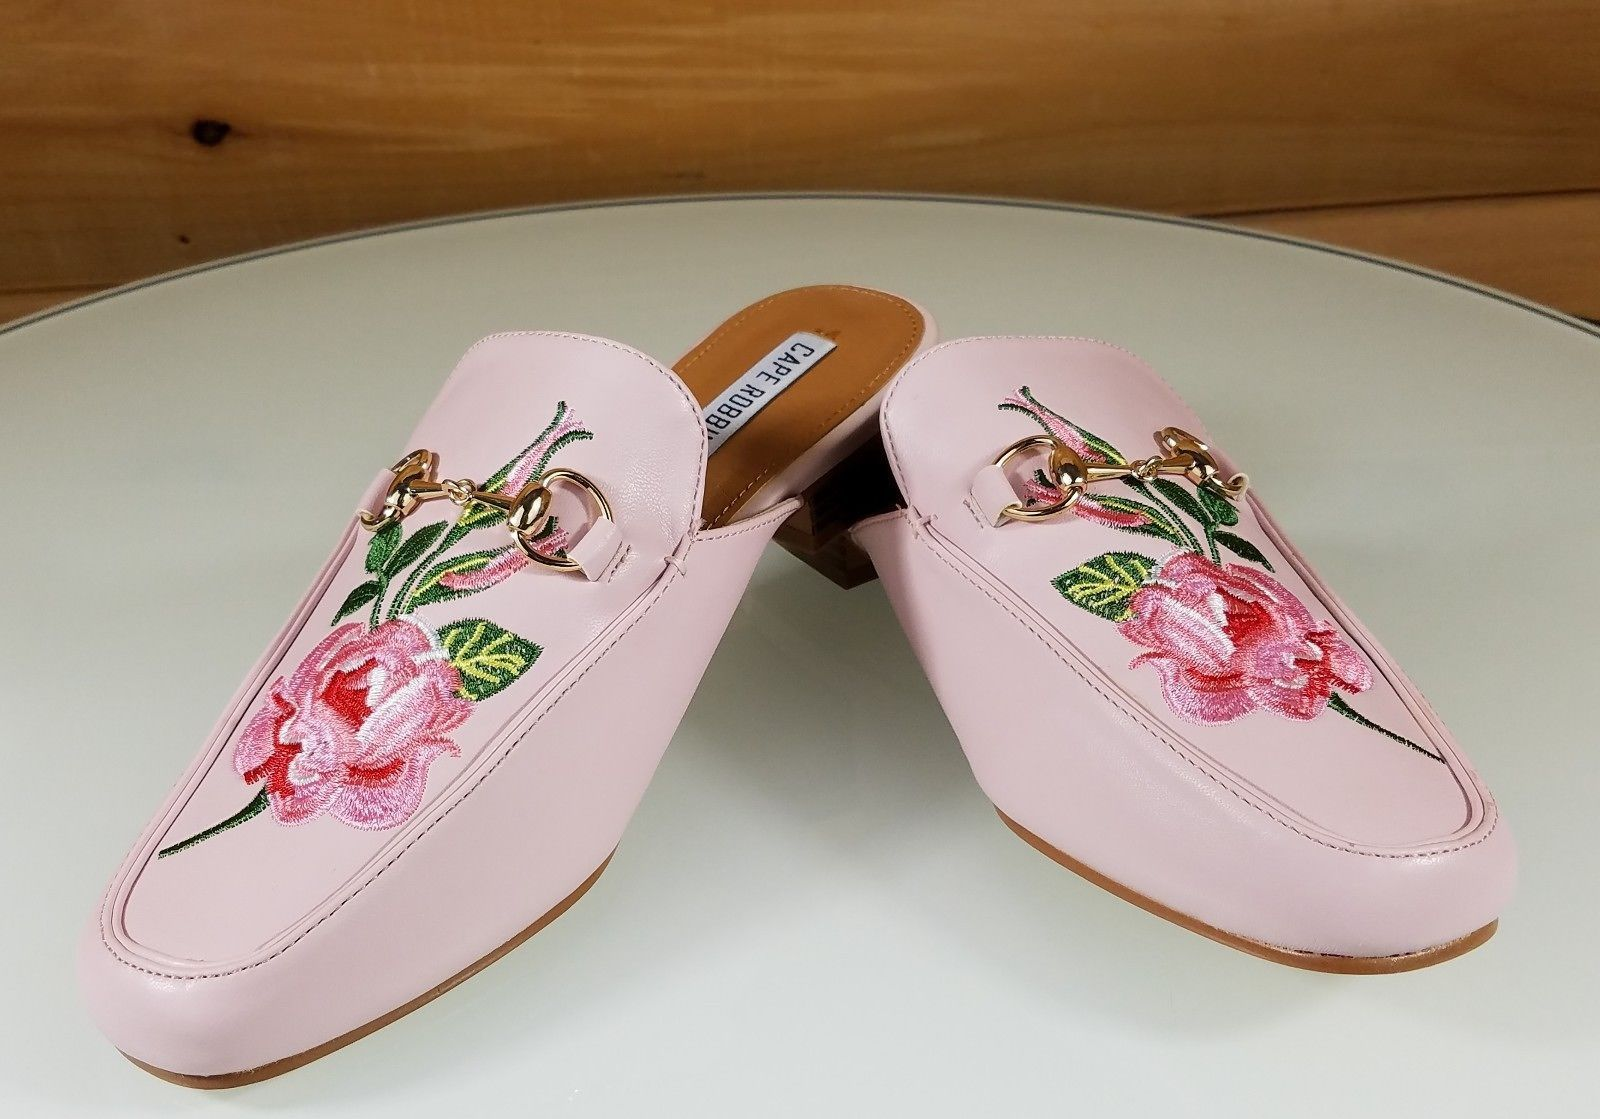 CR Pink Almond Toe Flats Mules Clog Embroidered Rose Design Slippers | Totally Wicked Footwear